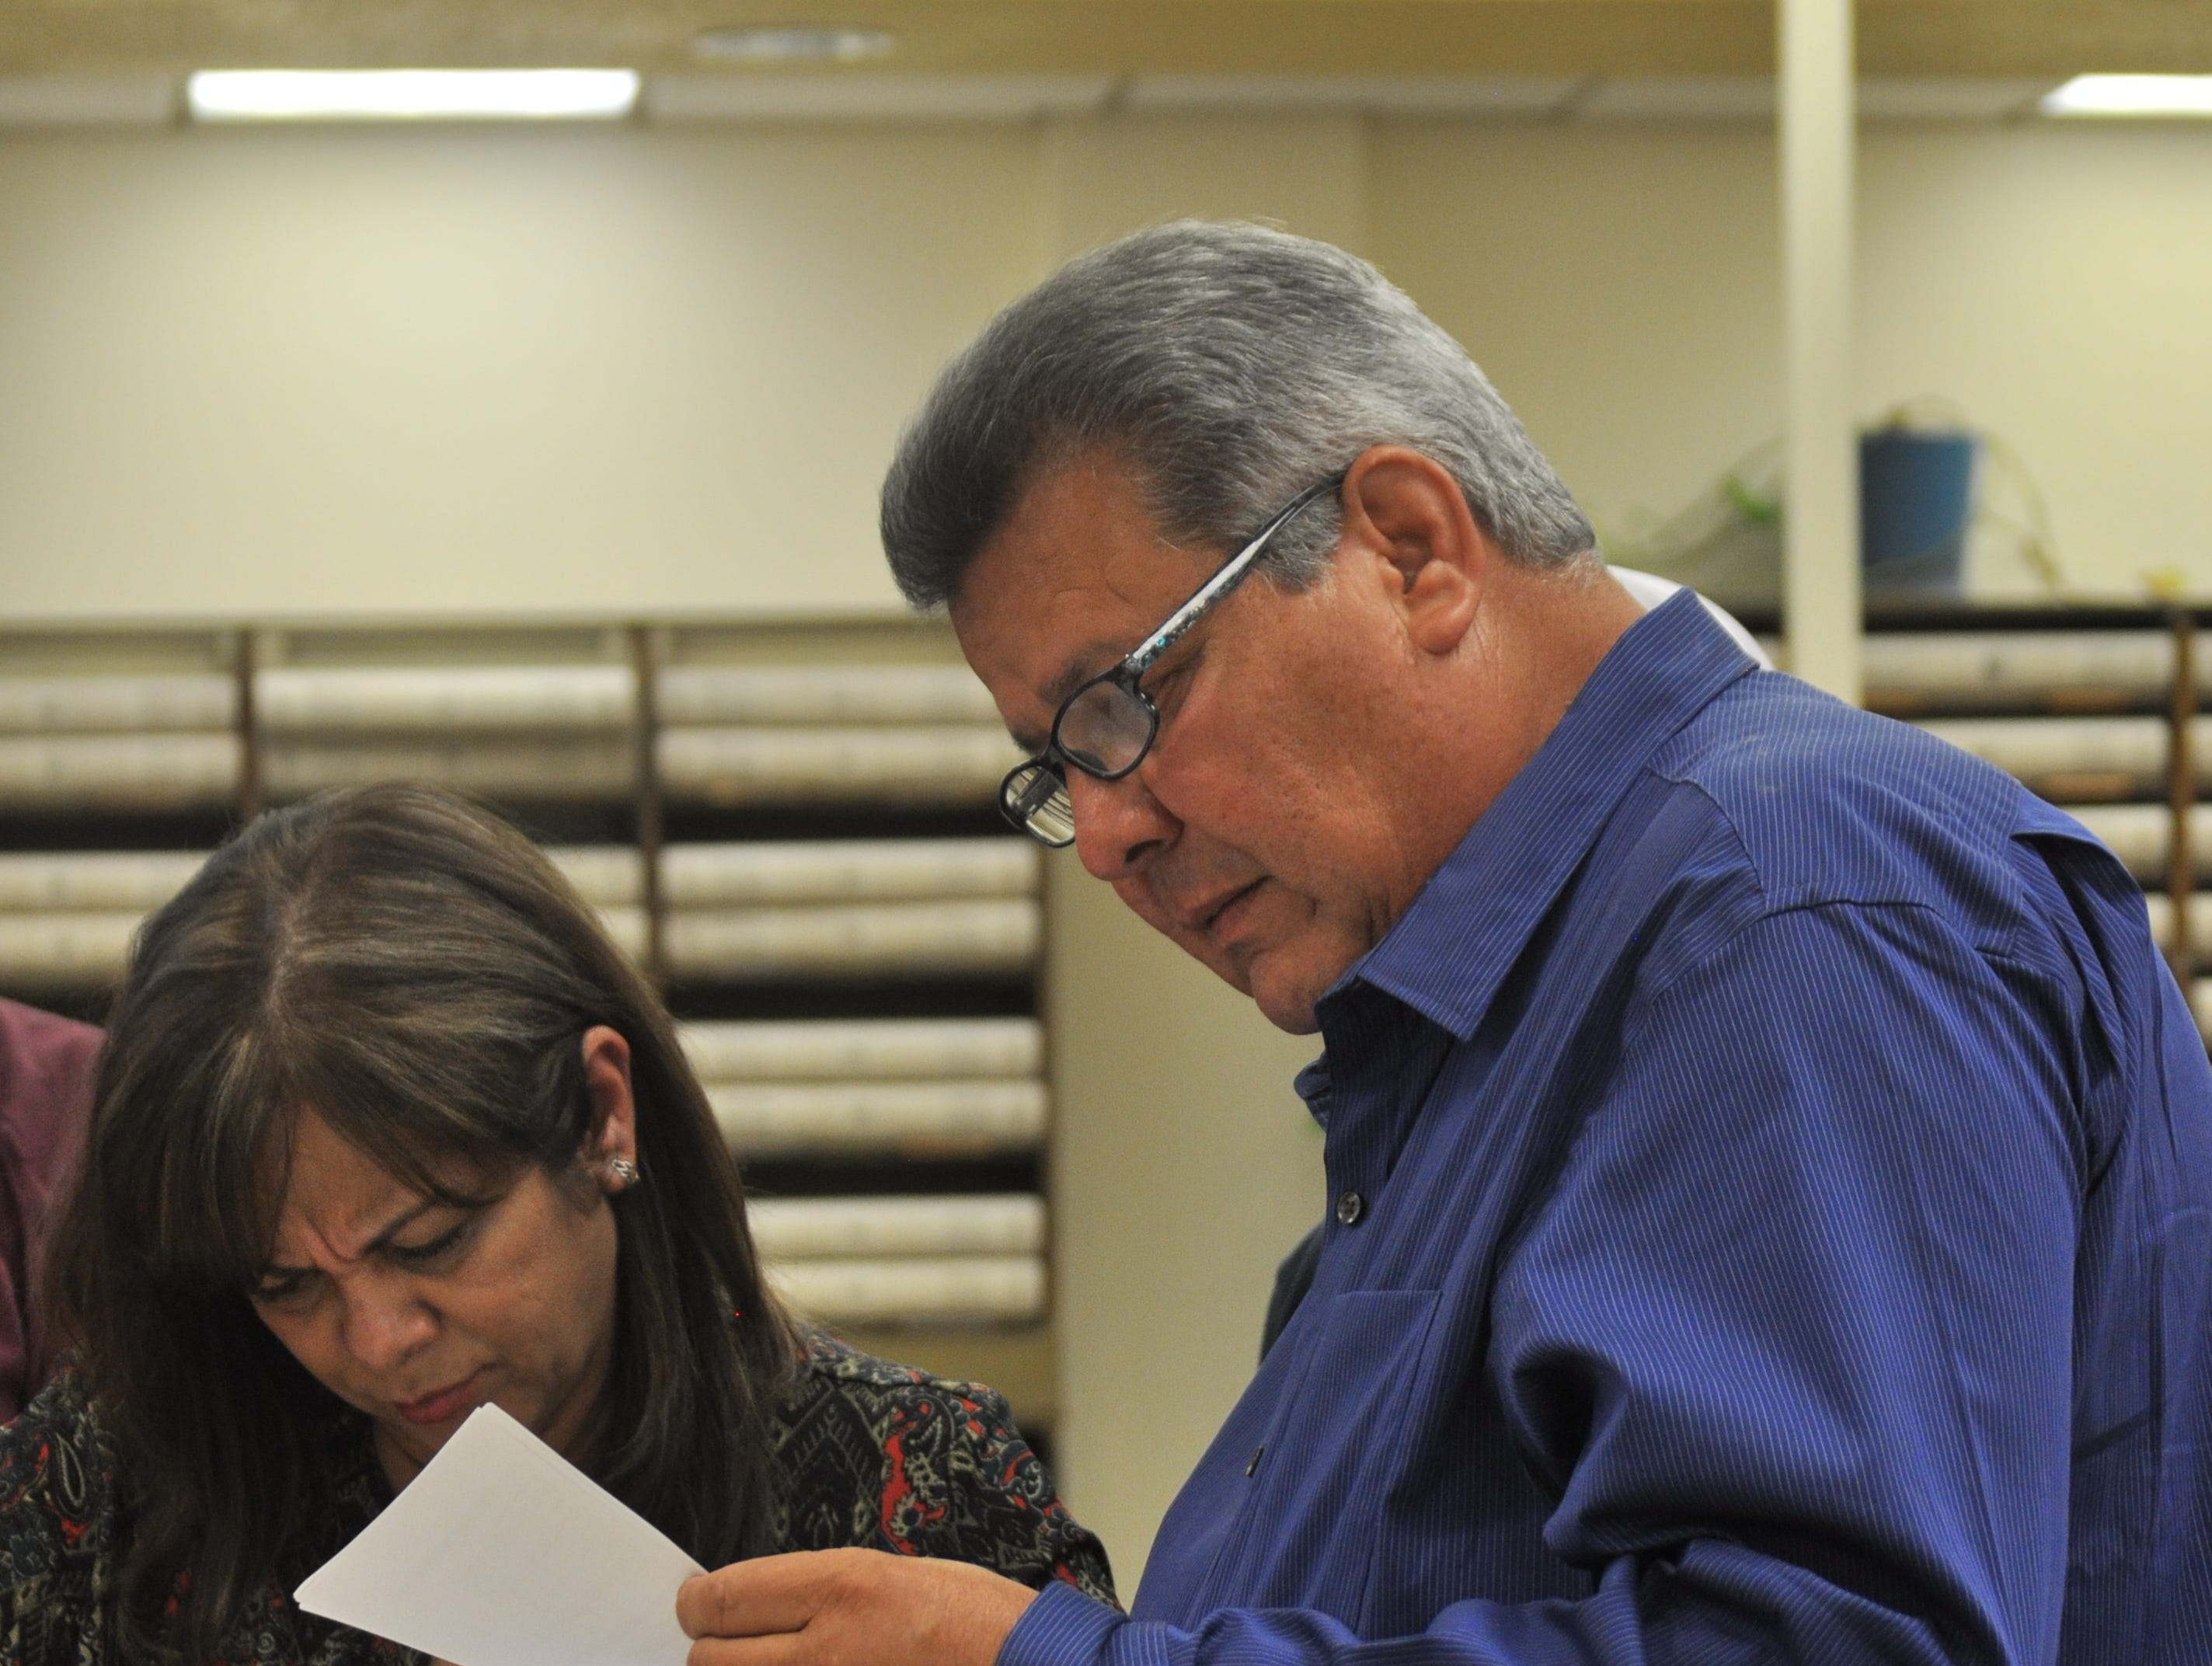 Tony Hernandez, Democratic candidate for the Eddy County Board of Commissioners District 1, reviews elections results with his family Oct. 6 at the Eddy County Clerk's Office.